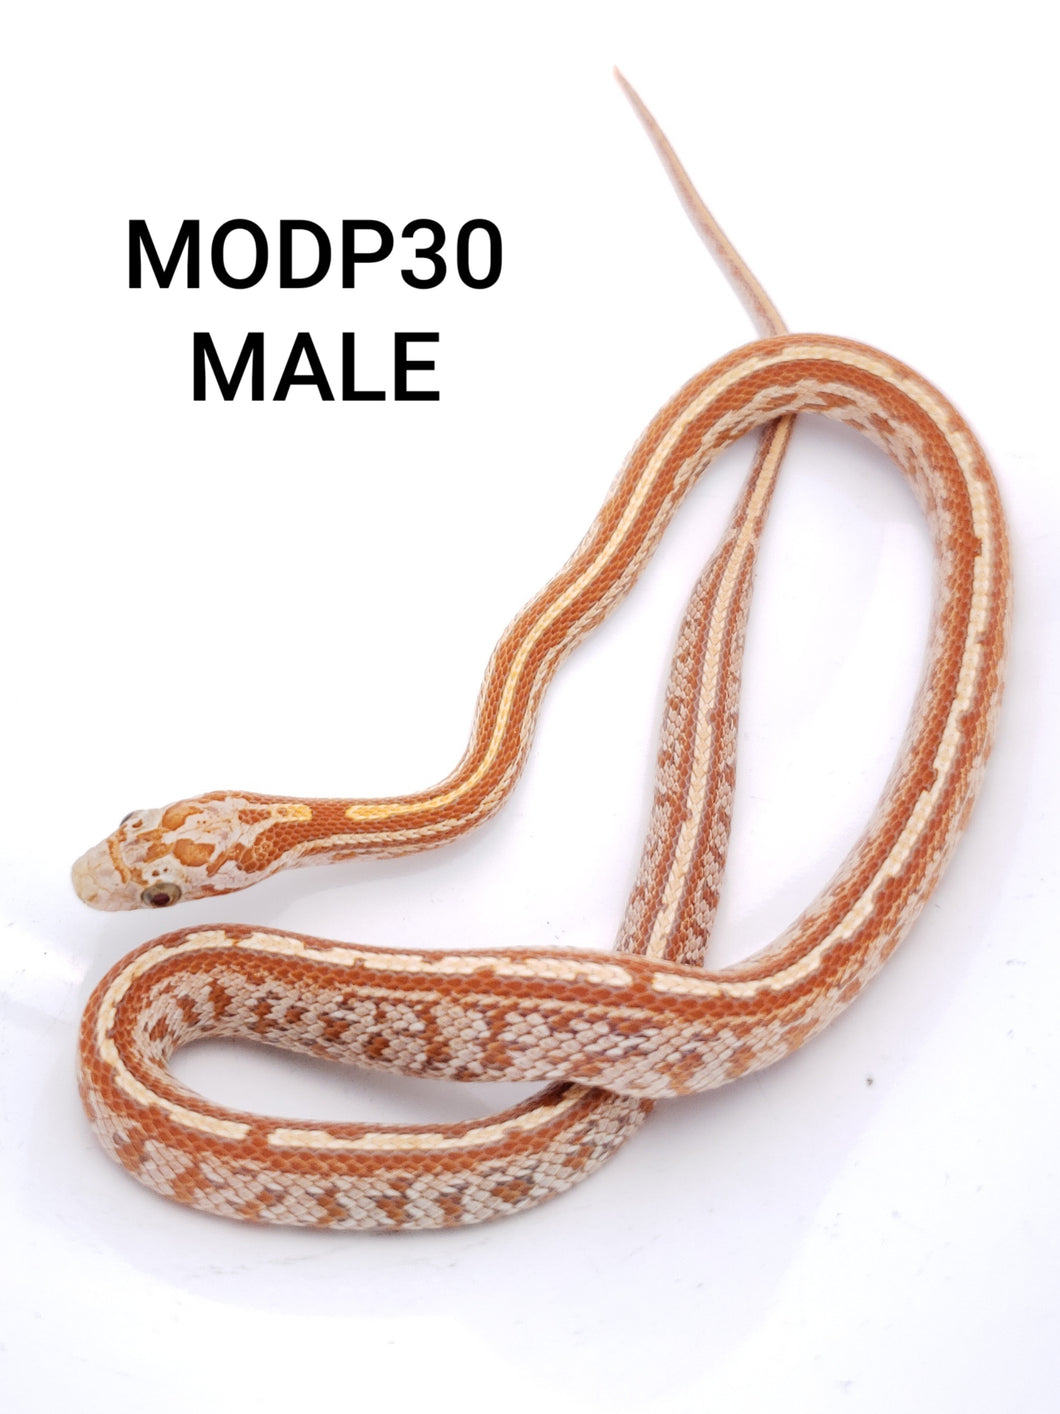 Ultramel Tessera Masque Corn Snake Male